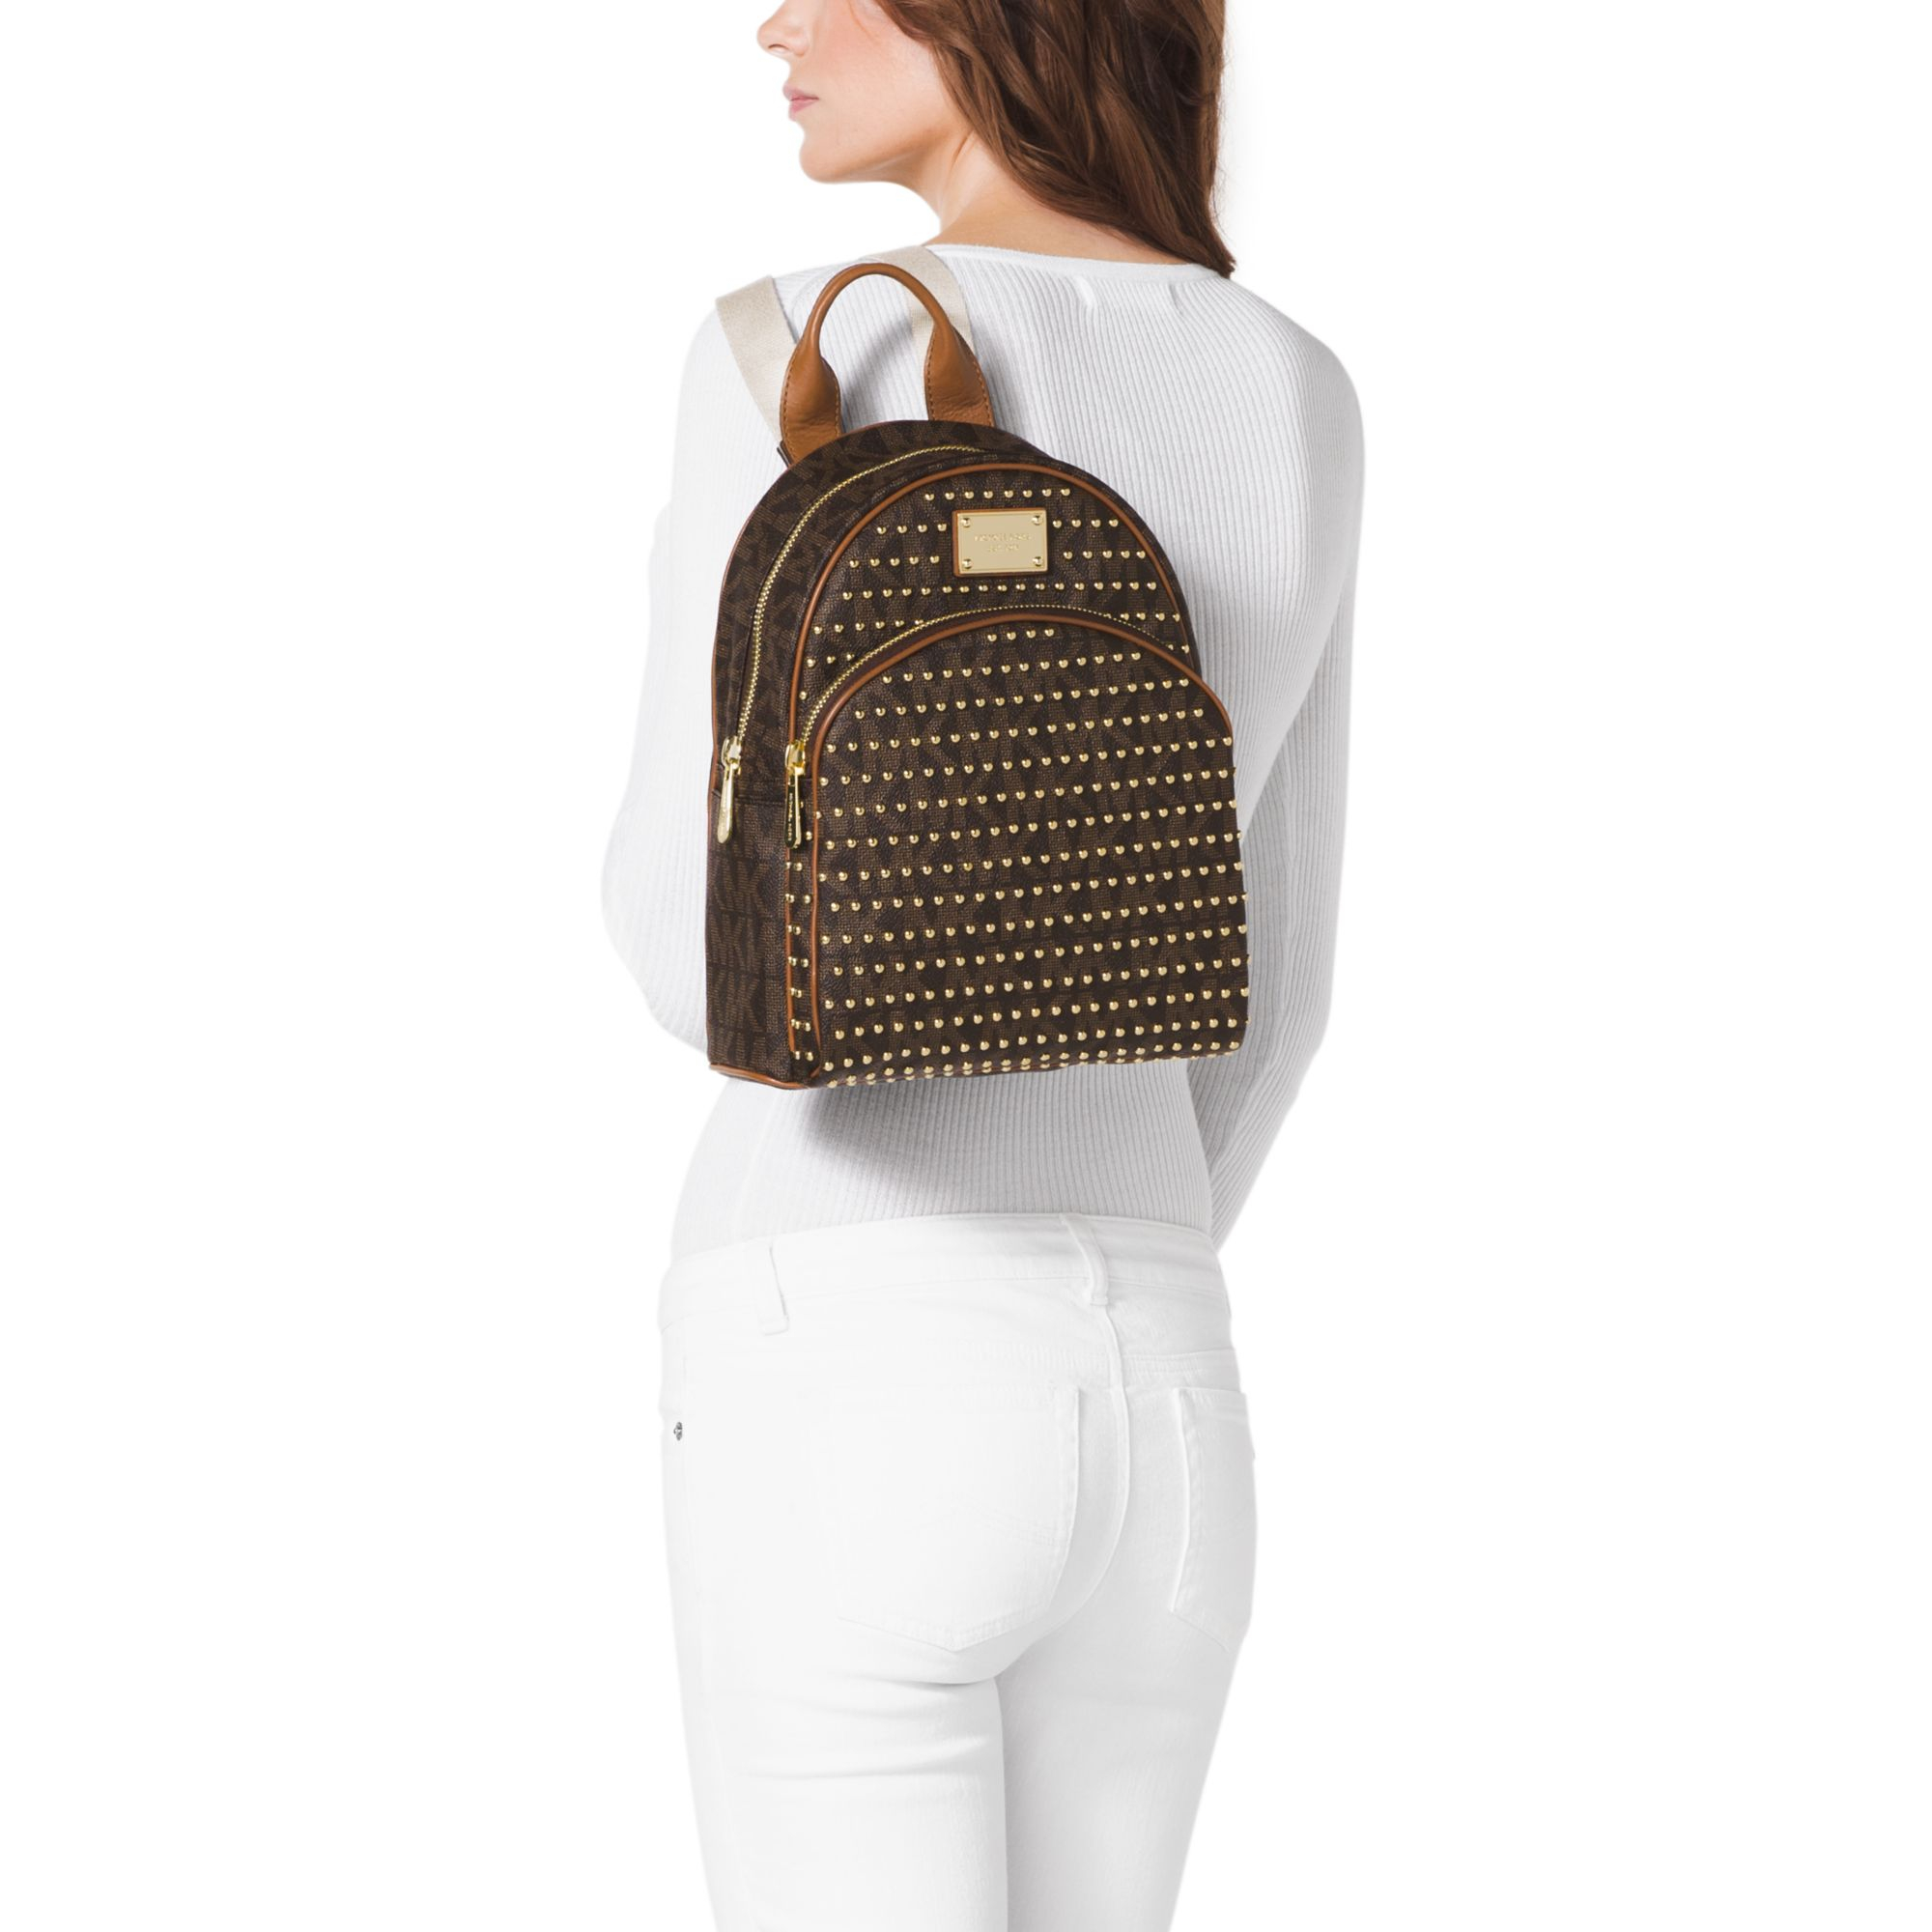 7ac55d5c5955 Lyst - Michael Kors Jet Set Travel Small Studded Logo Backpack in Brown